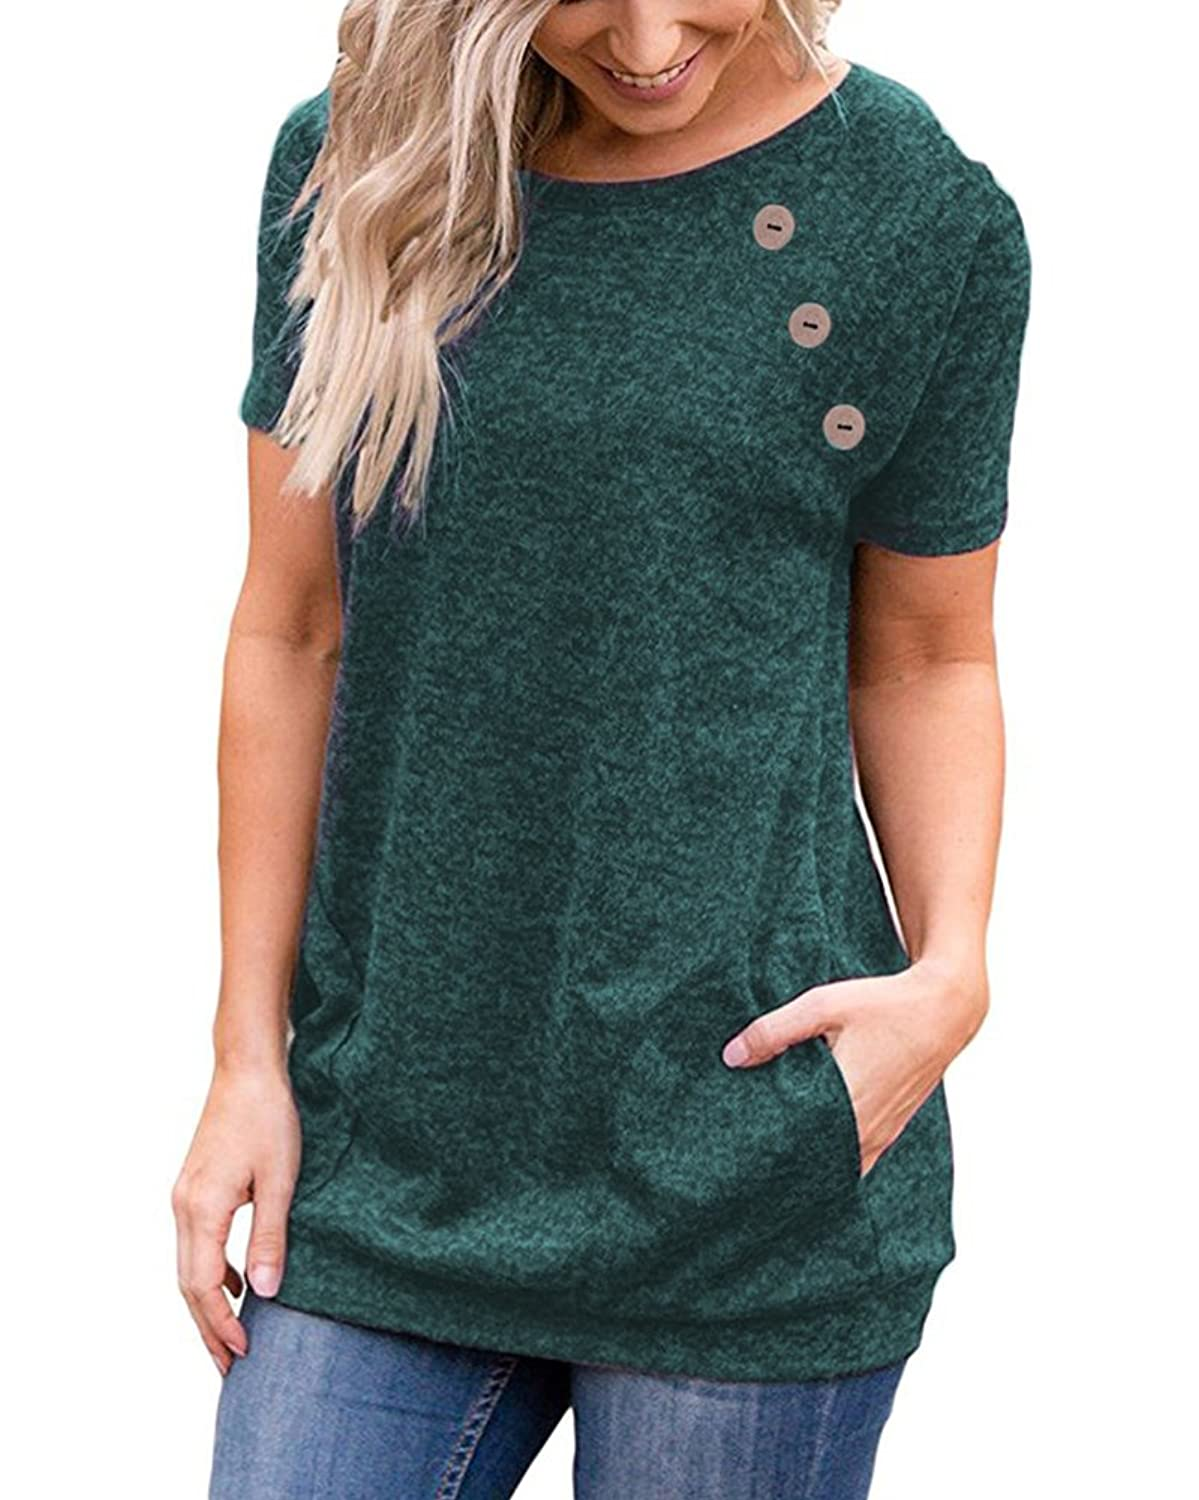 444b367206d Features: Short Sleeve, Round Neck, Solid Color, Three Buttons on The  Front, Loose Fit Tunic Top.